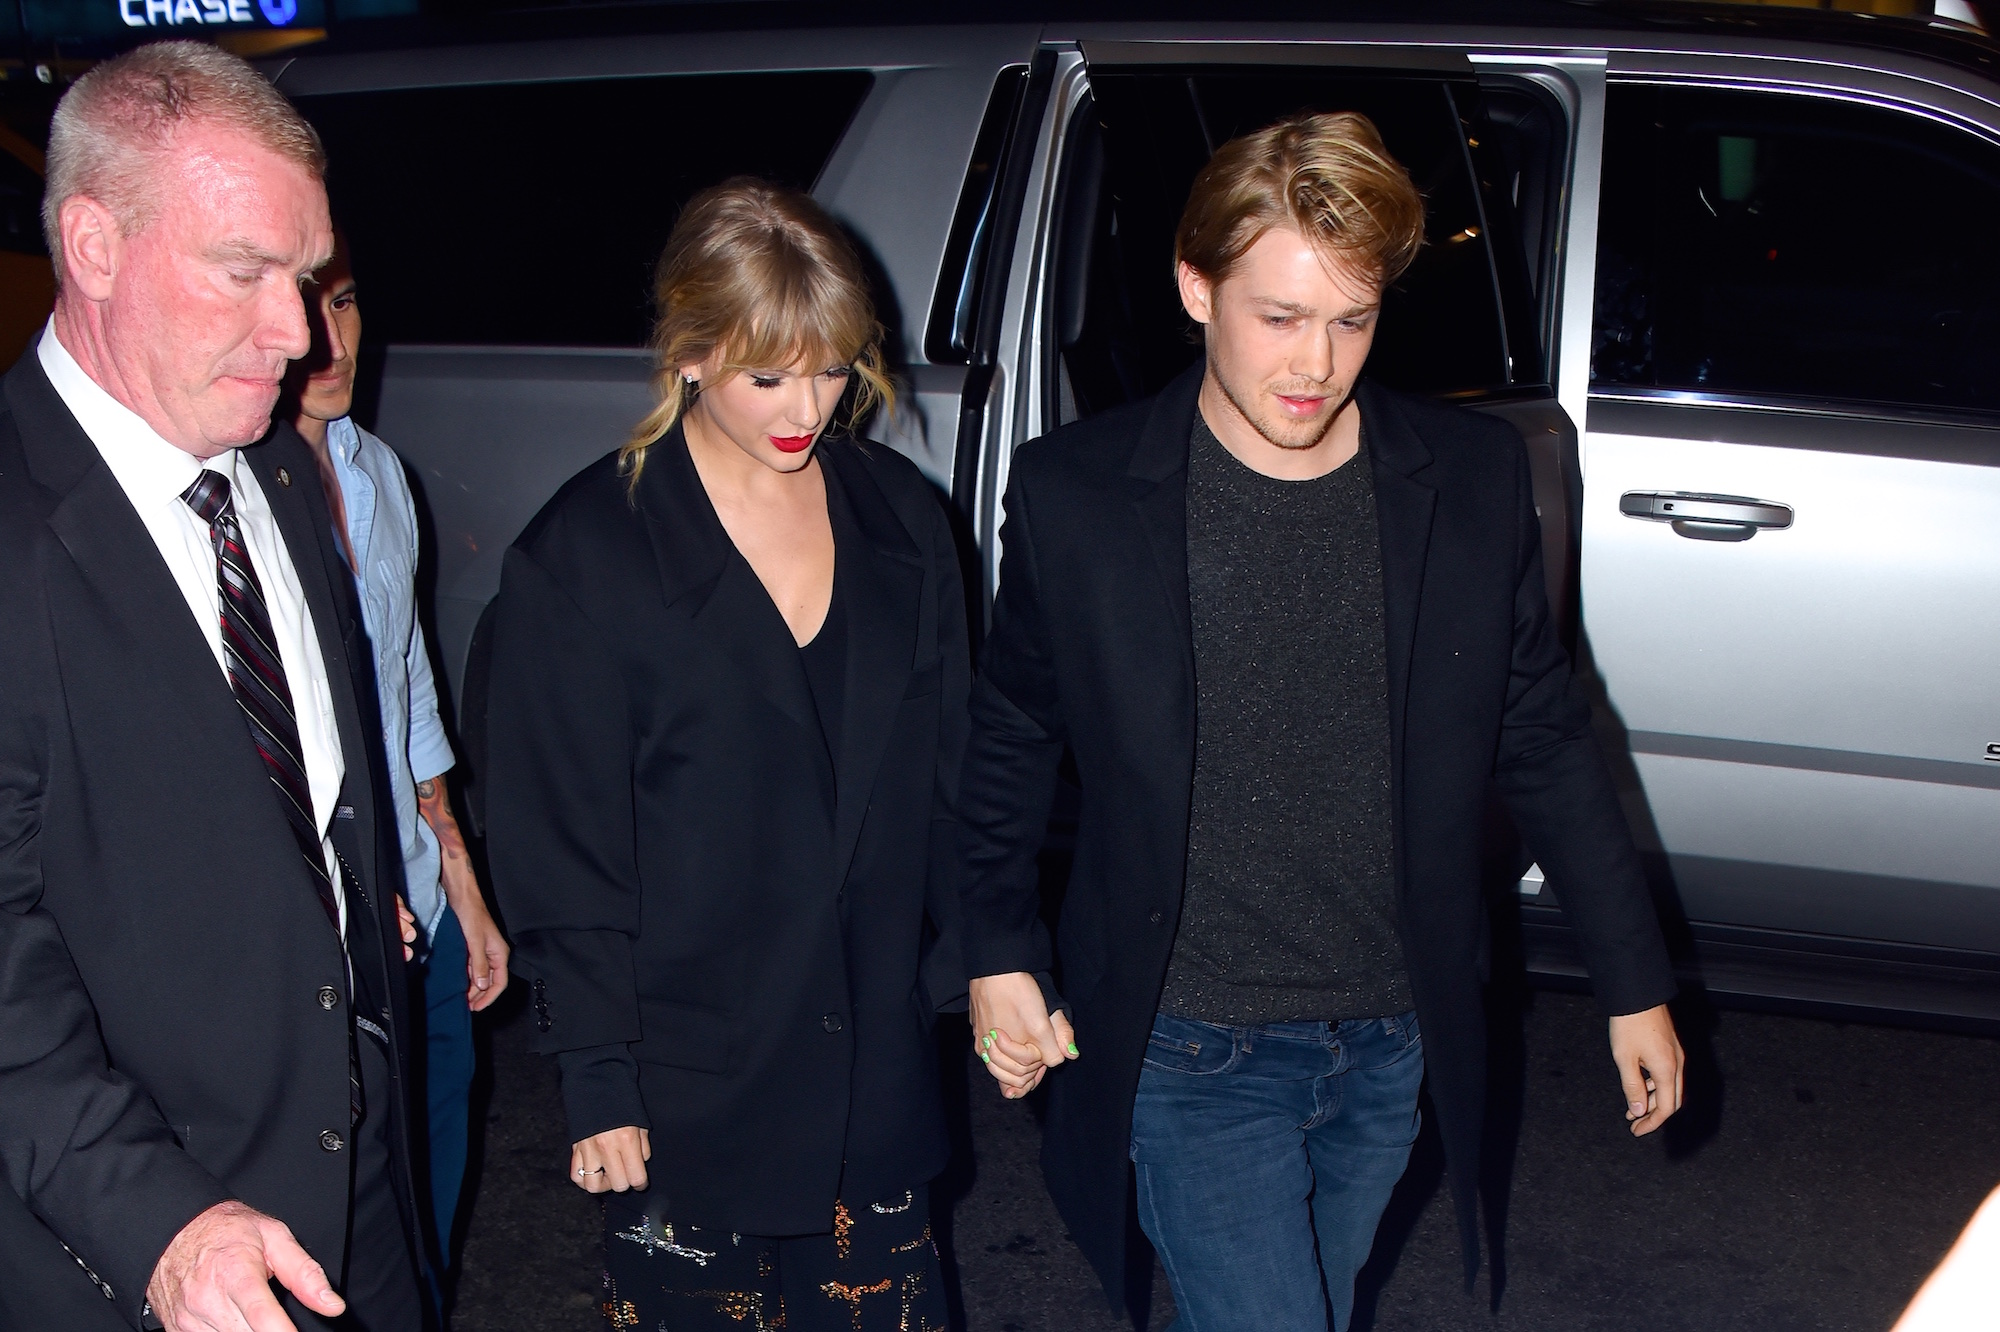 Taylor Swift and Joe Alwyn at Zuma restaurant on  October 6, 2019 in New York City.